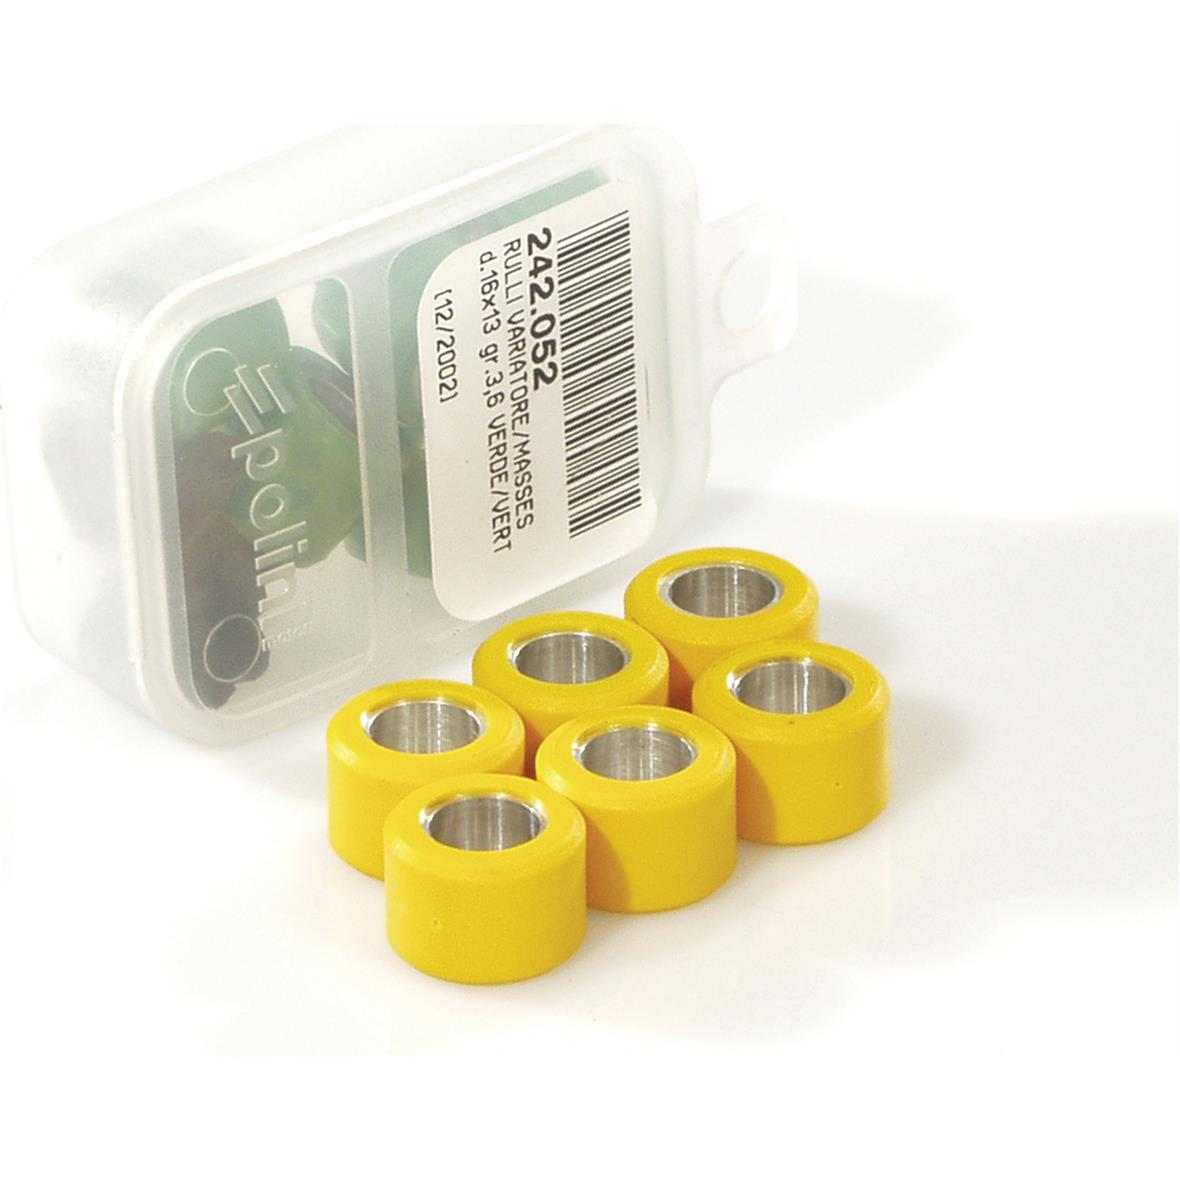 Product Image for 'Variator Rollers POLINI 15x12 mm 6,5gTitle'